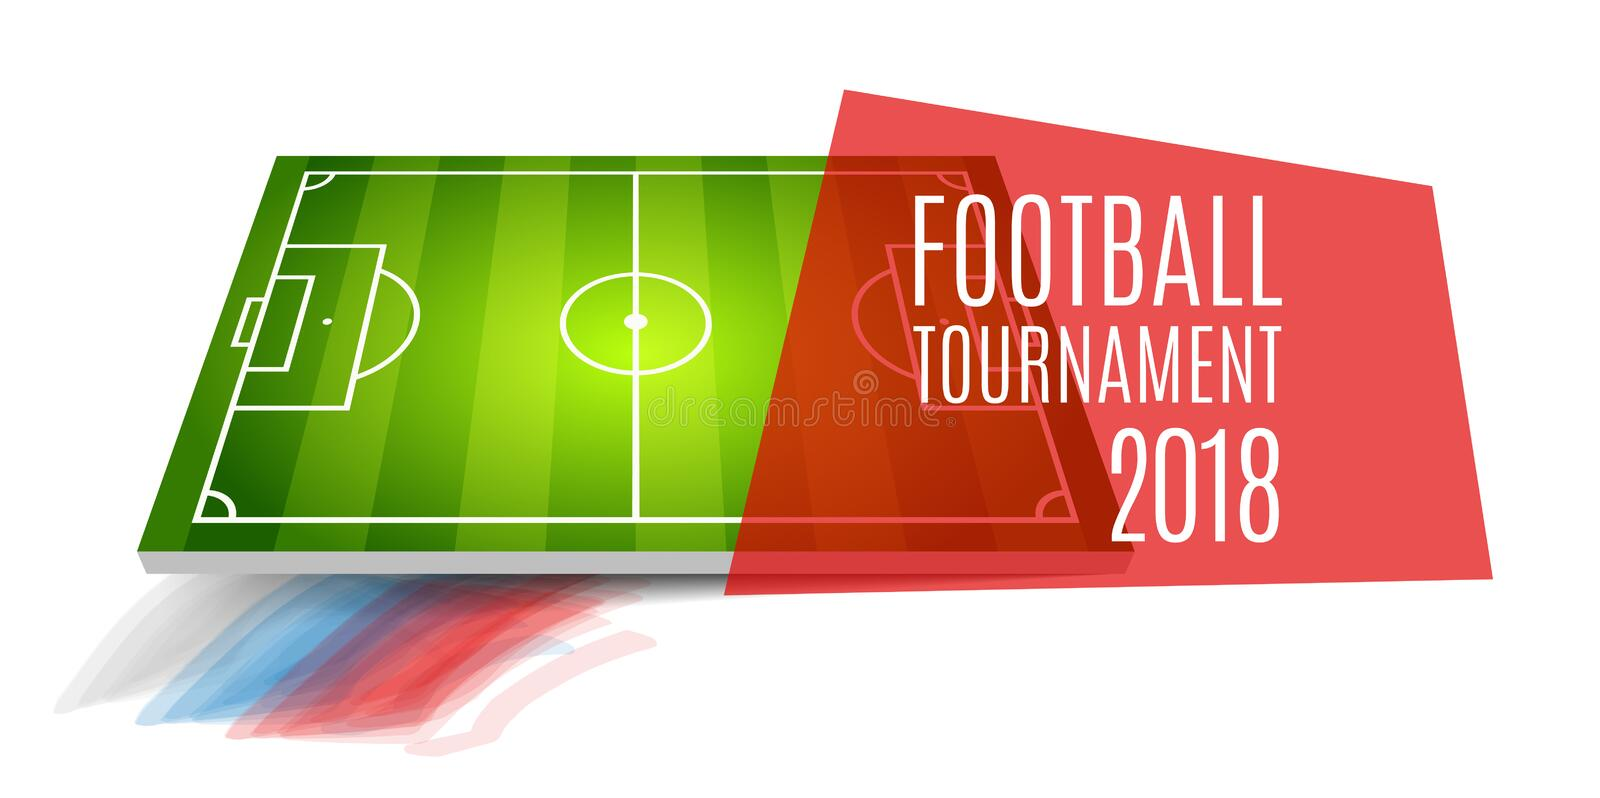 Football tournament, cup 2018. Soccer championship background design. Element for design cards, invitations, gift cards royalty free illustration